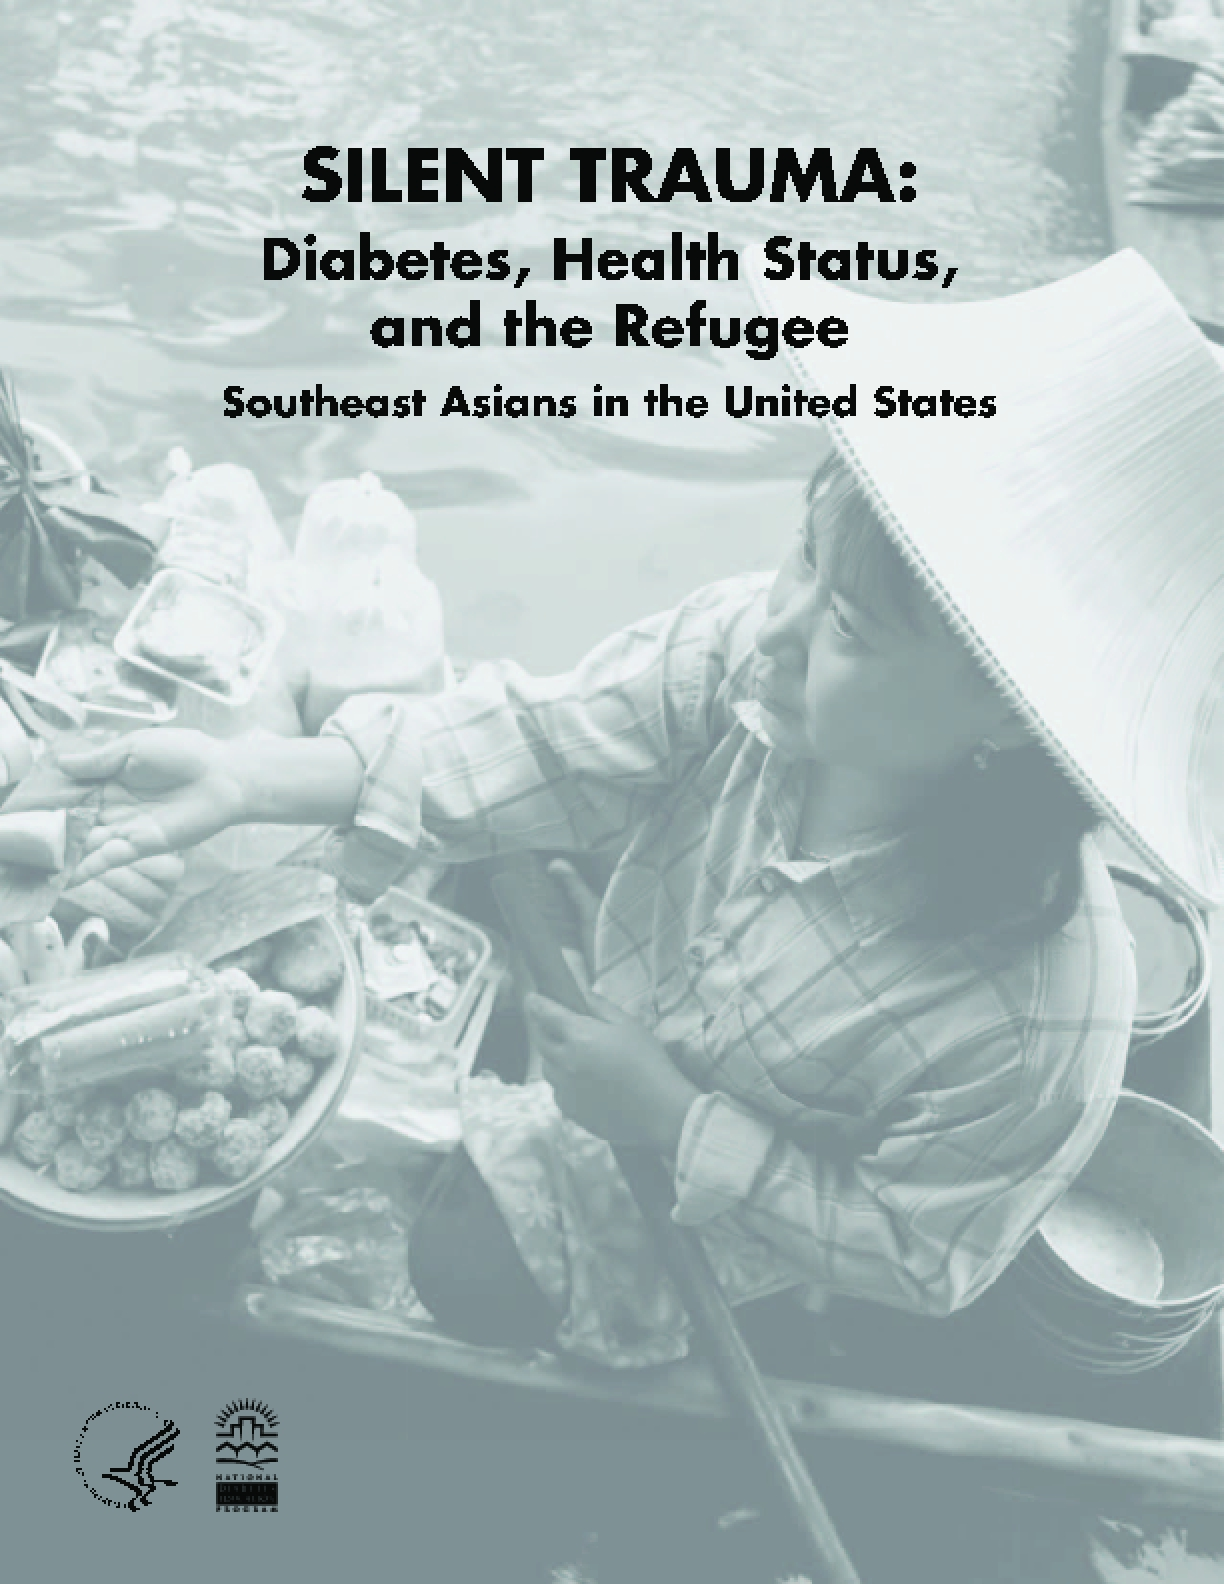 Silent Trauma: Diabetes, Health Status, and the Refugee Southeast Asians in the United States